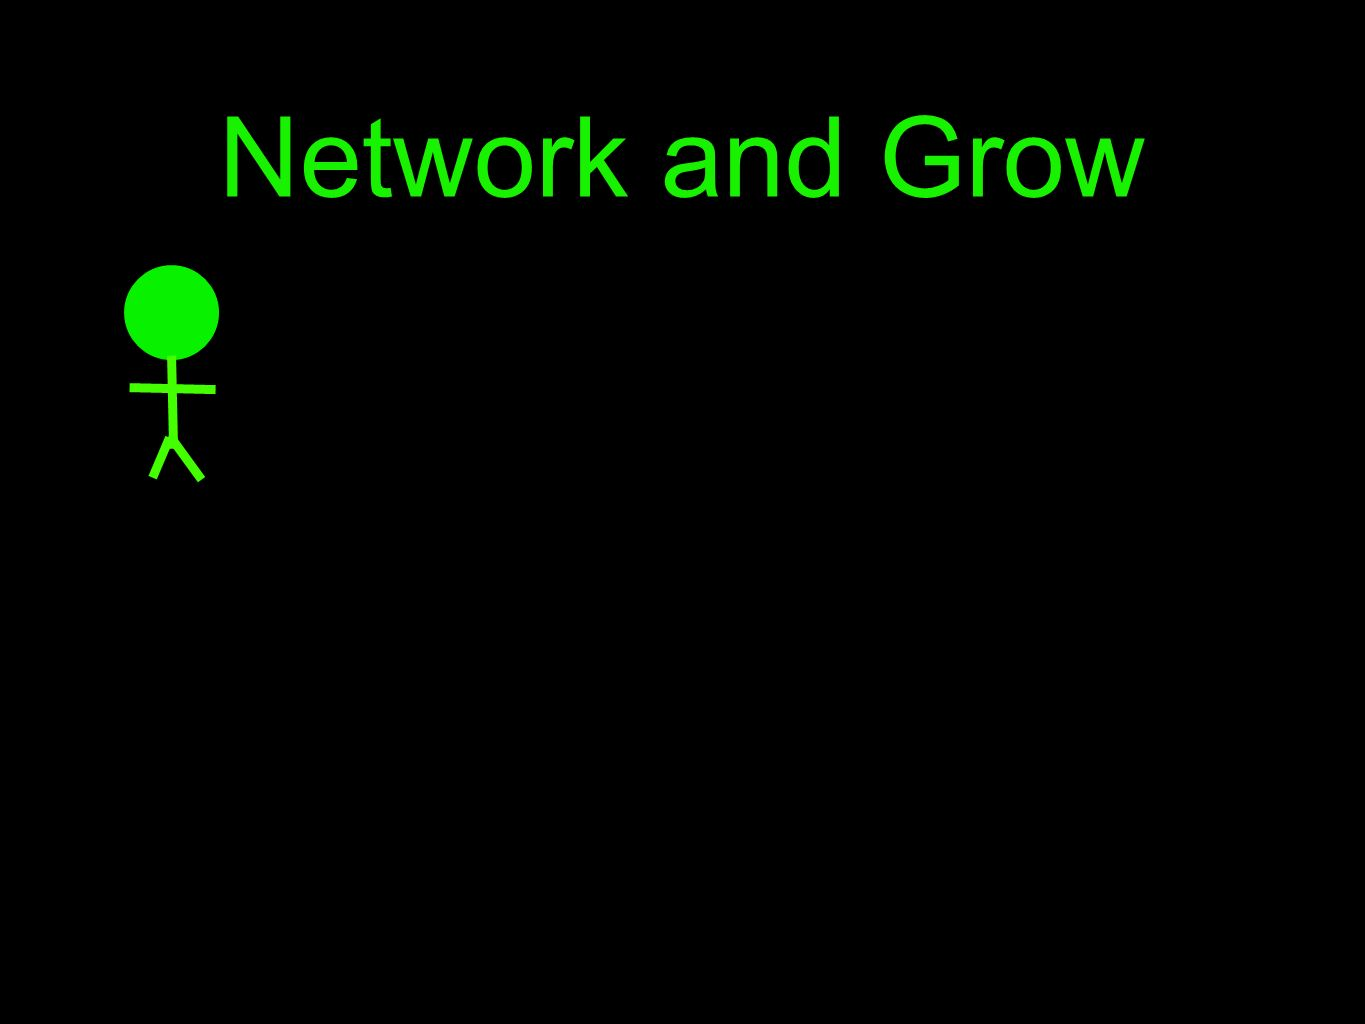 Network and Grow